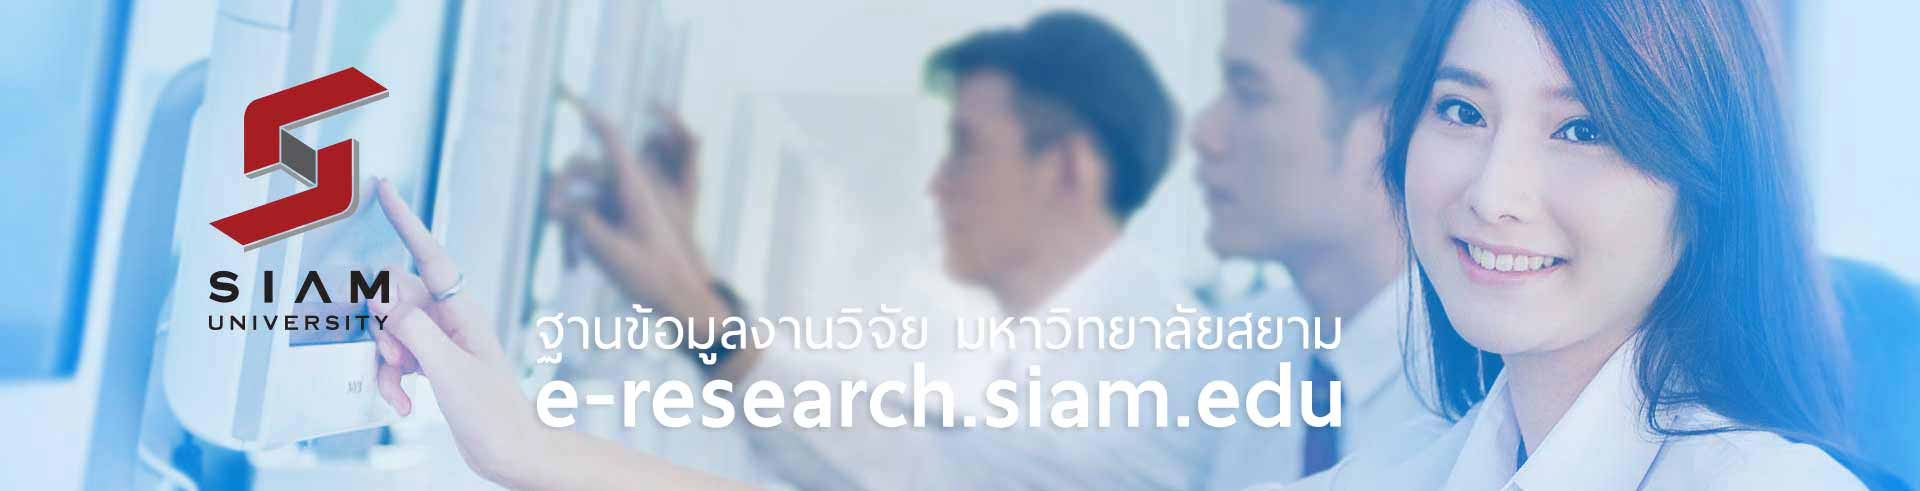 THESIS TOPIC:RESEARCH ON INTERNET MARKETING MODELS OF AGRICULTURAL PRODUCTION BASES IN CHINA—A CASE STUDY OF FUHE AGRICULTURAL COMPANY (60-0546) - ฐานข้อมูลงานวิจัย มหาวิทยาลัยสยาม